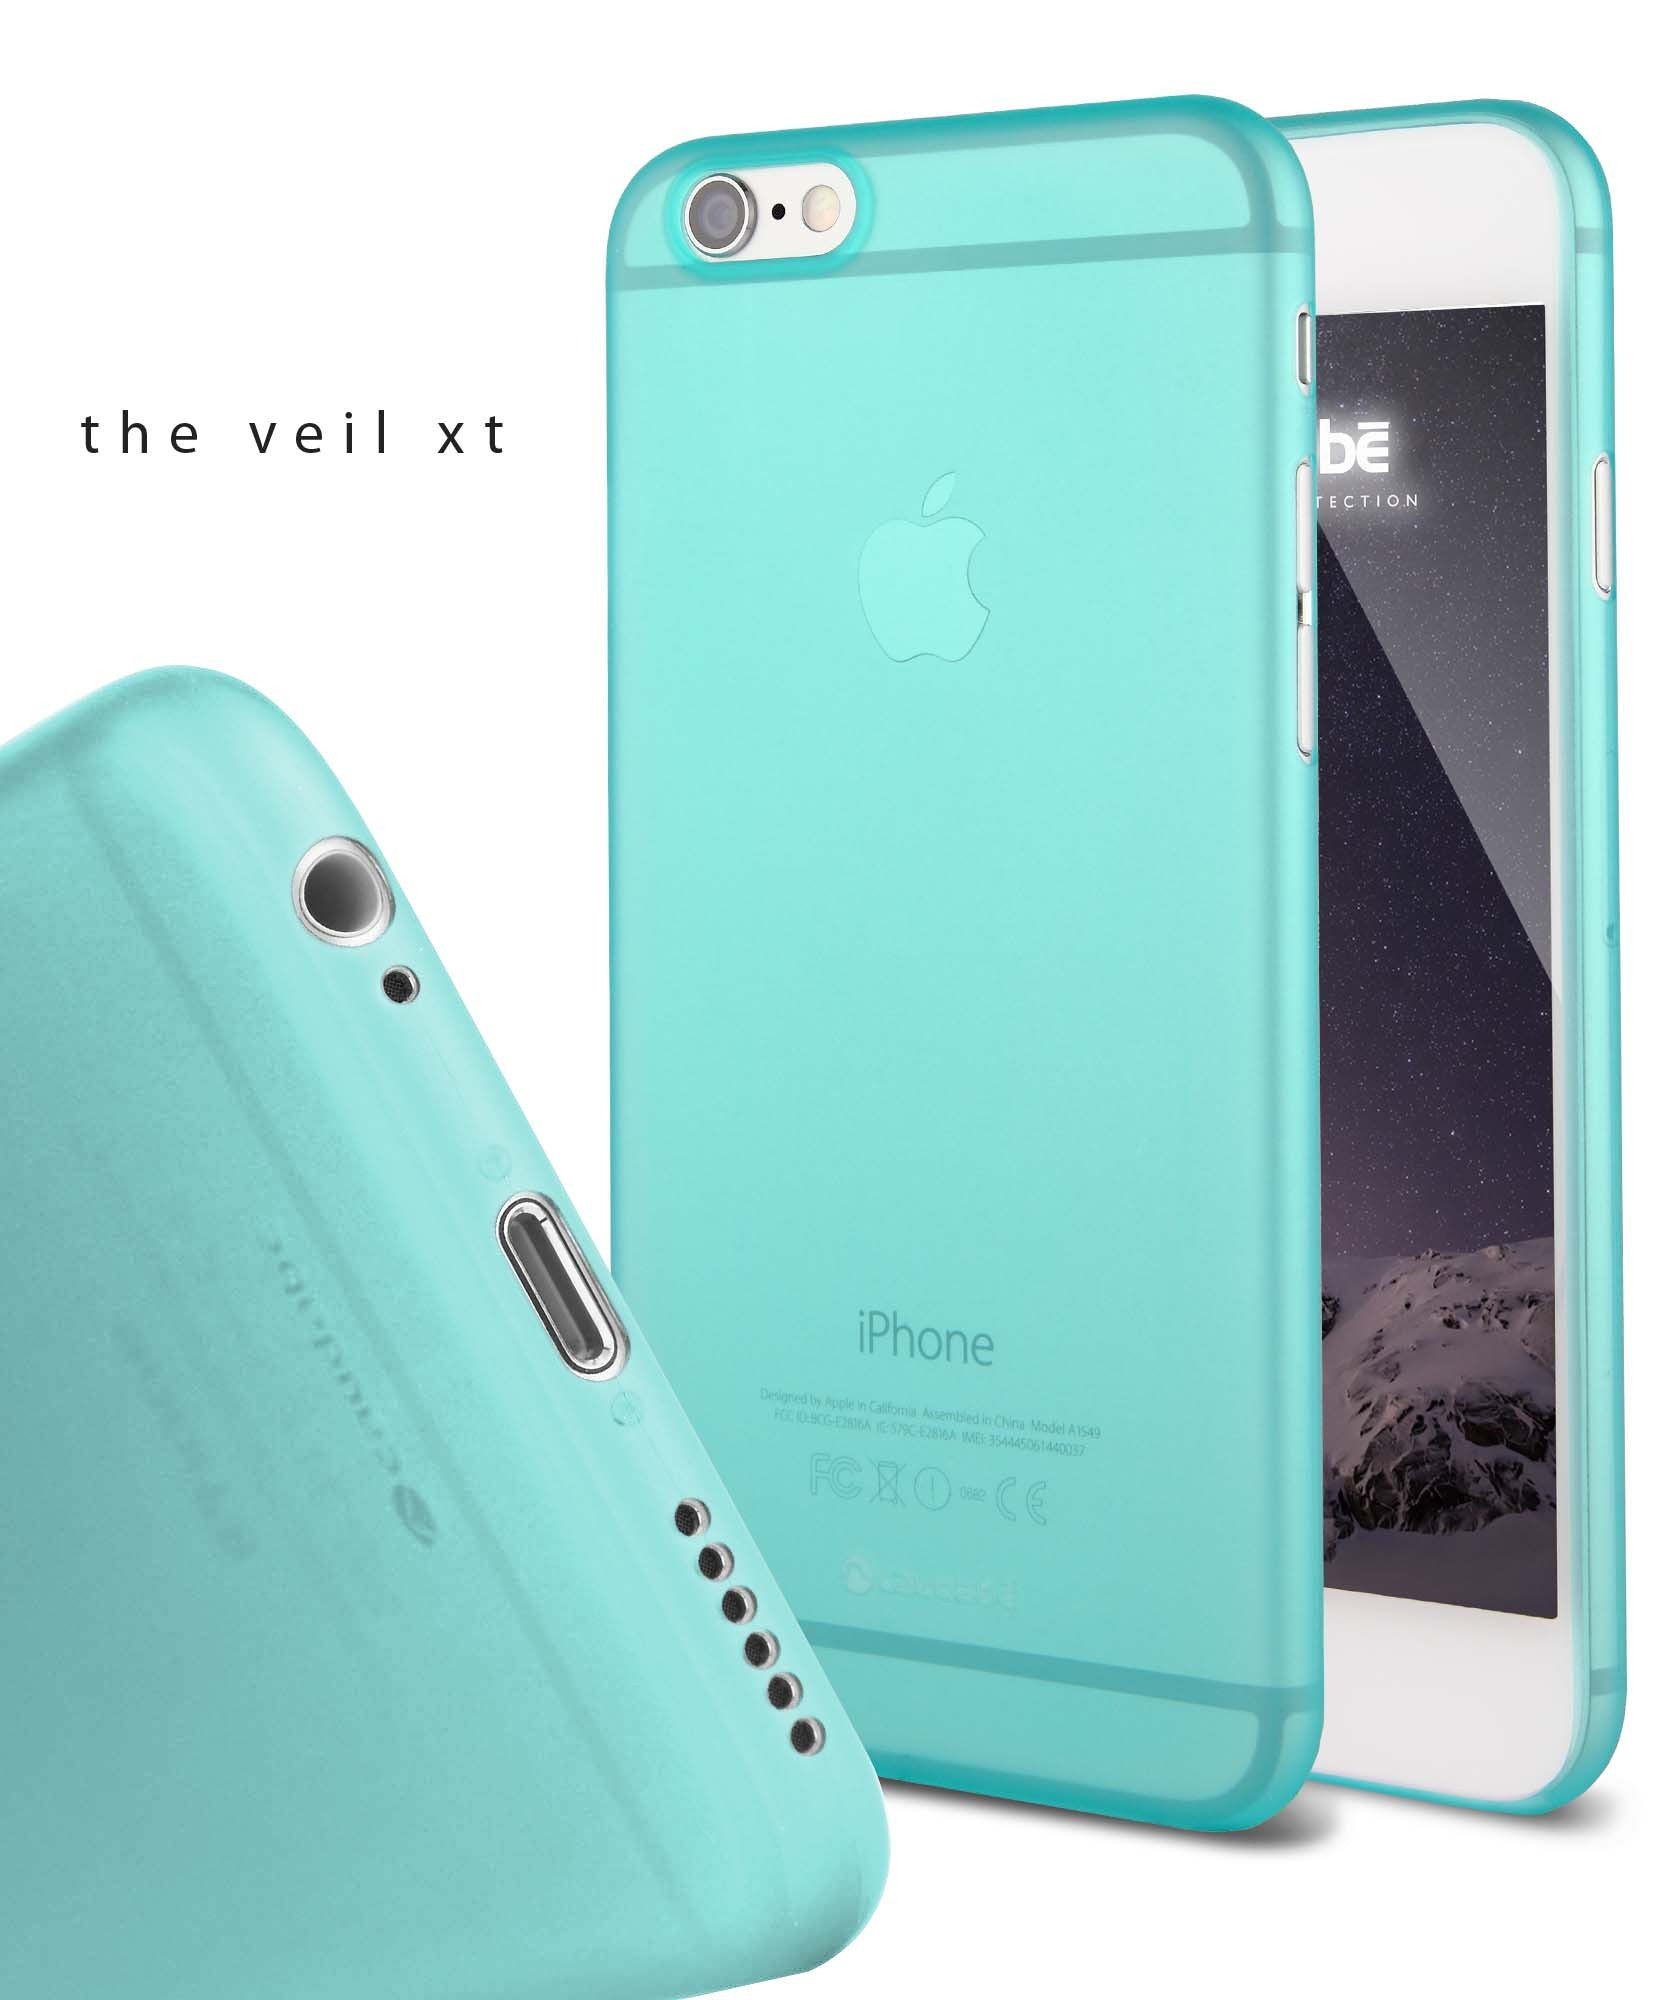 iphone 6 or 6 plus caudabe the veil xt ultra thin iphone 6s 17546